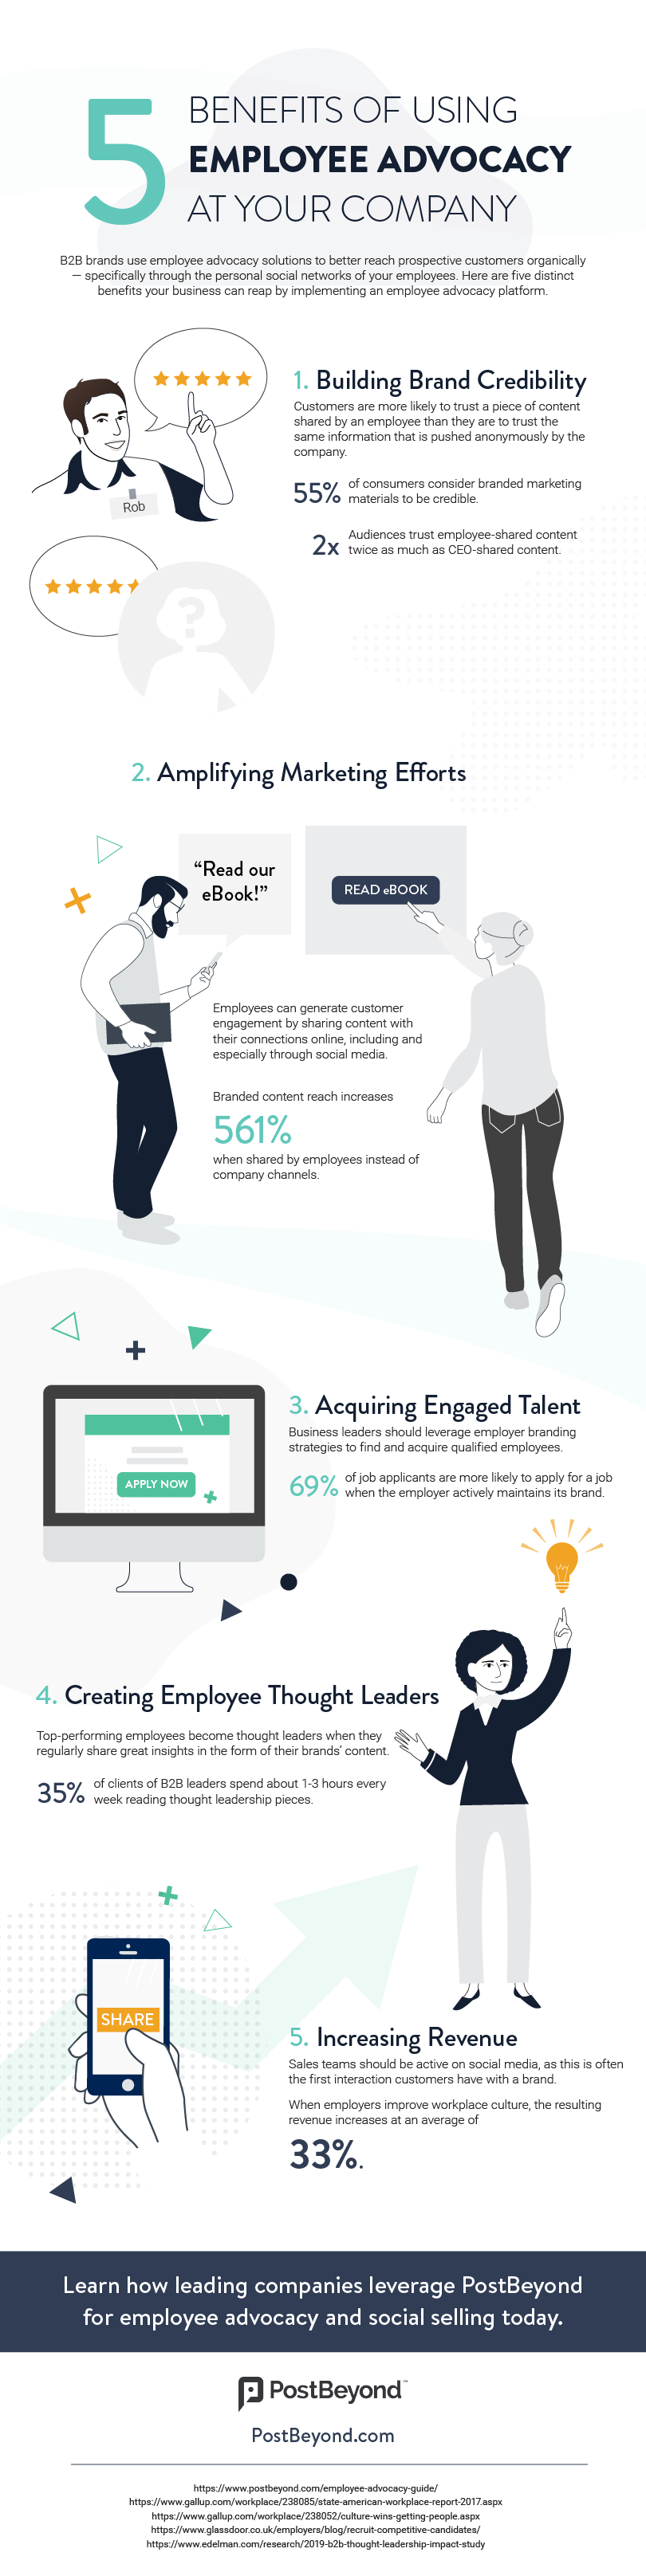 Infographic: Employee advocacy benefits for the company